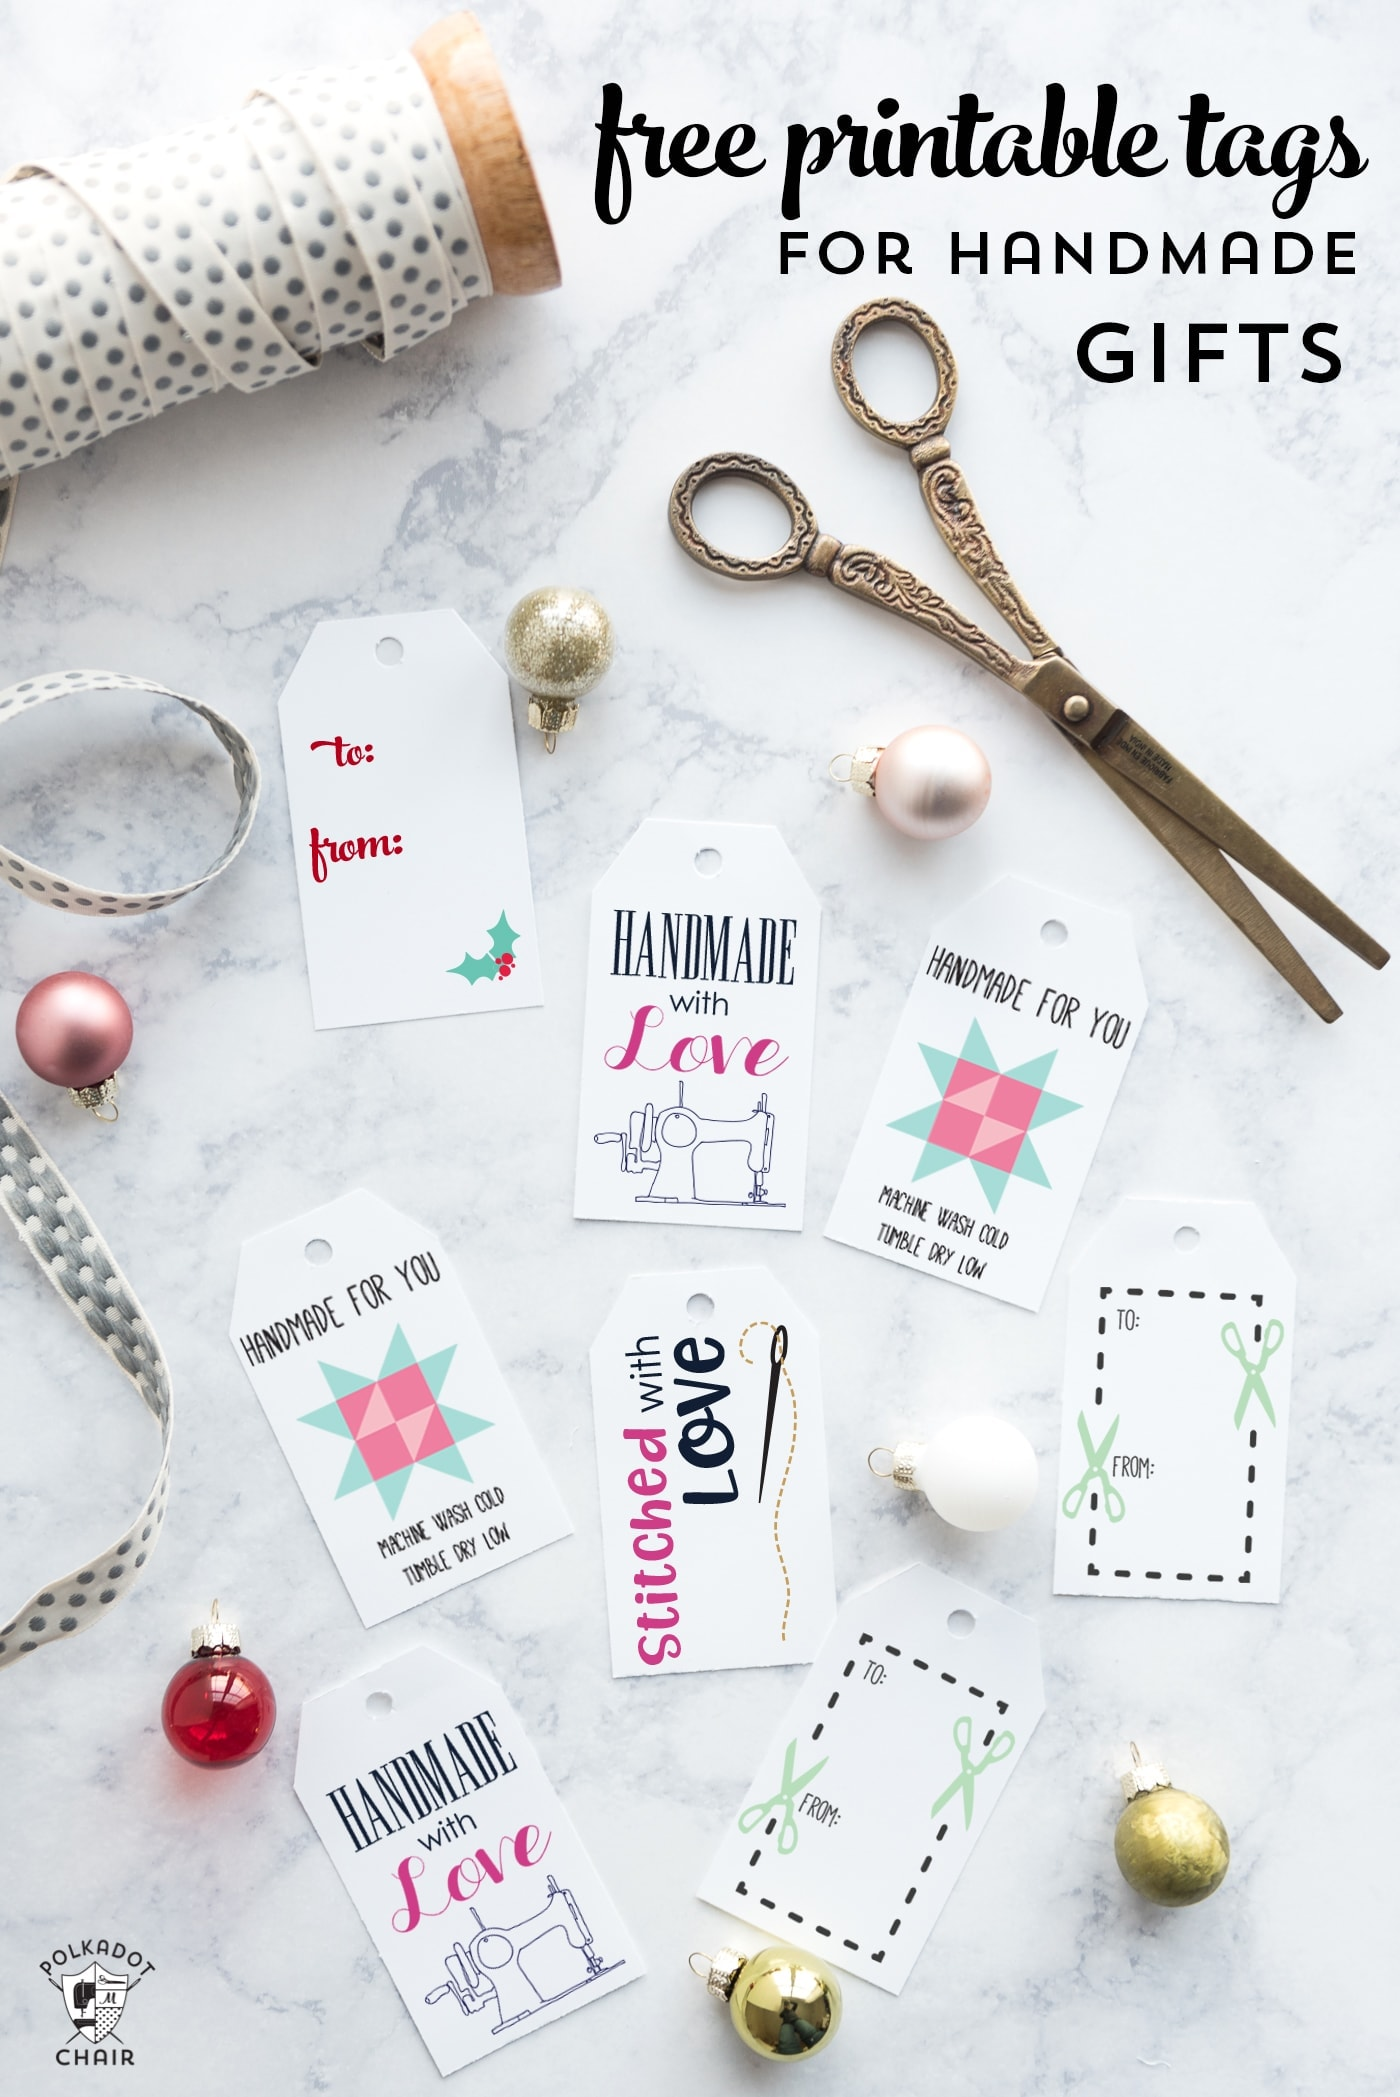 photograph relating to Printable Gift Tages referred to as 10+ Absolutely free Printable Reward Tags Ideal for Home made Presents